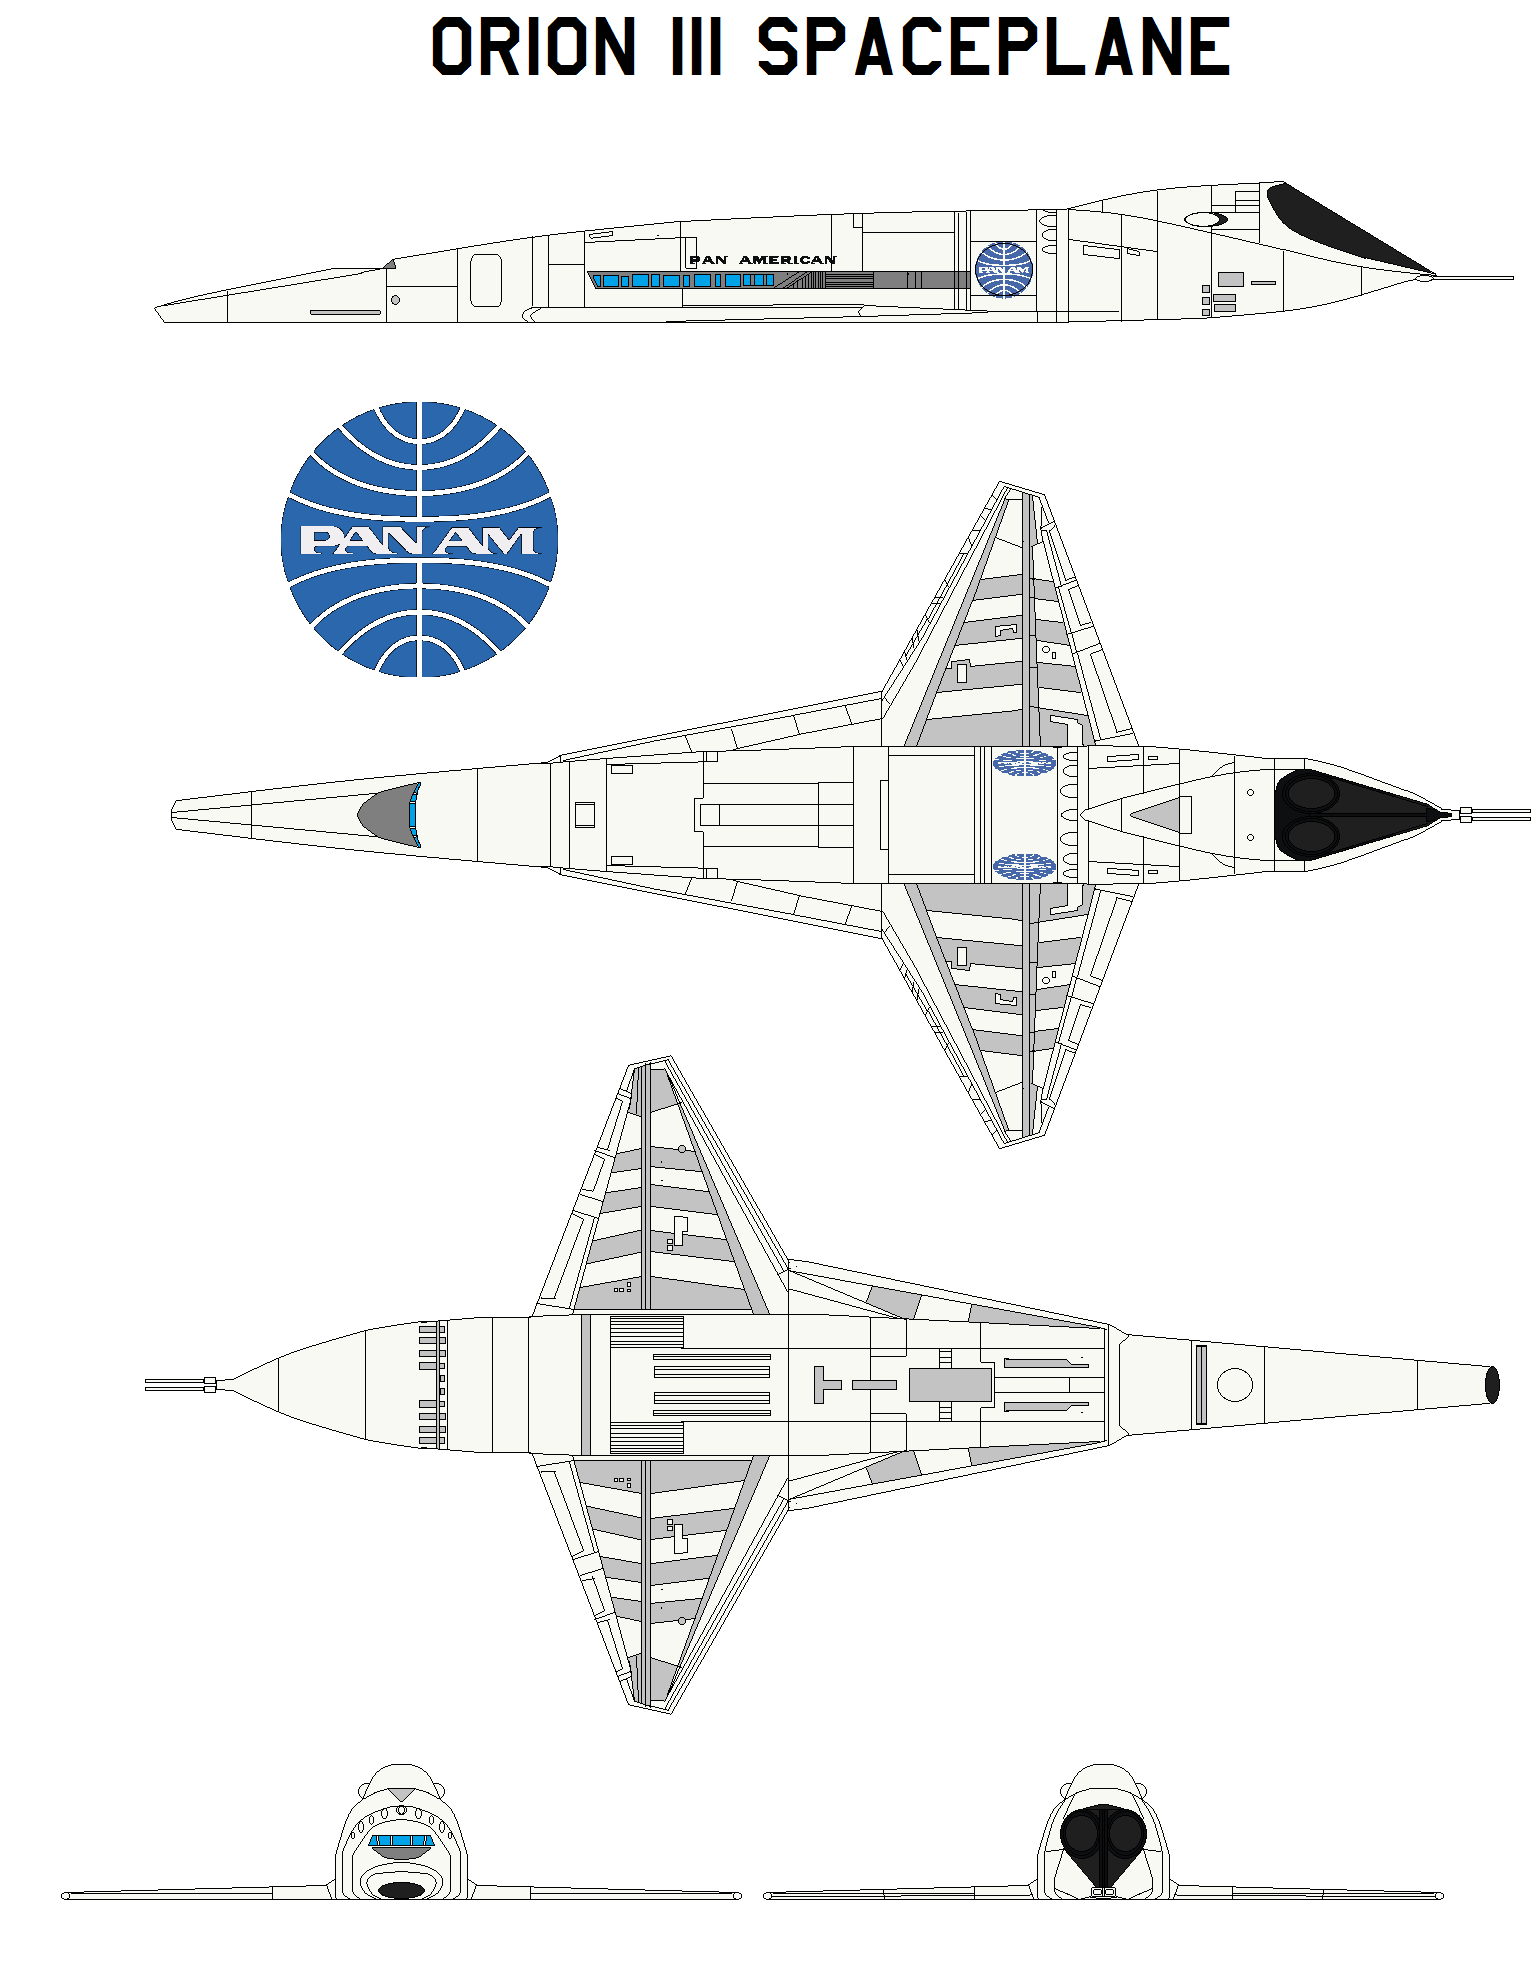 orion iii spaceplane 2001 a space odyssey by bagera3005 on